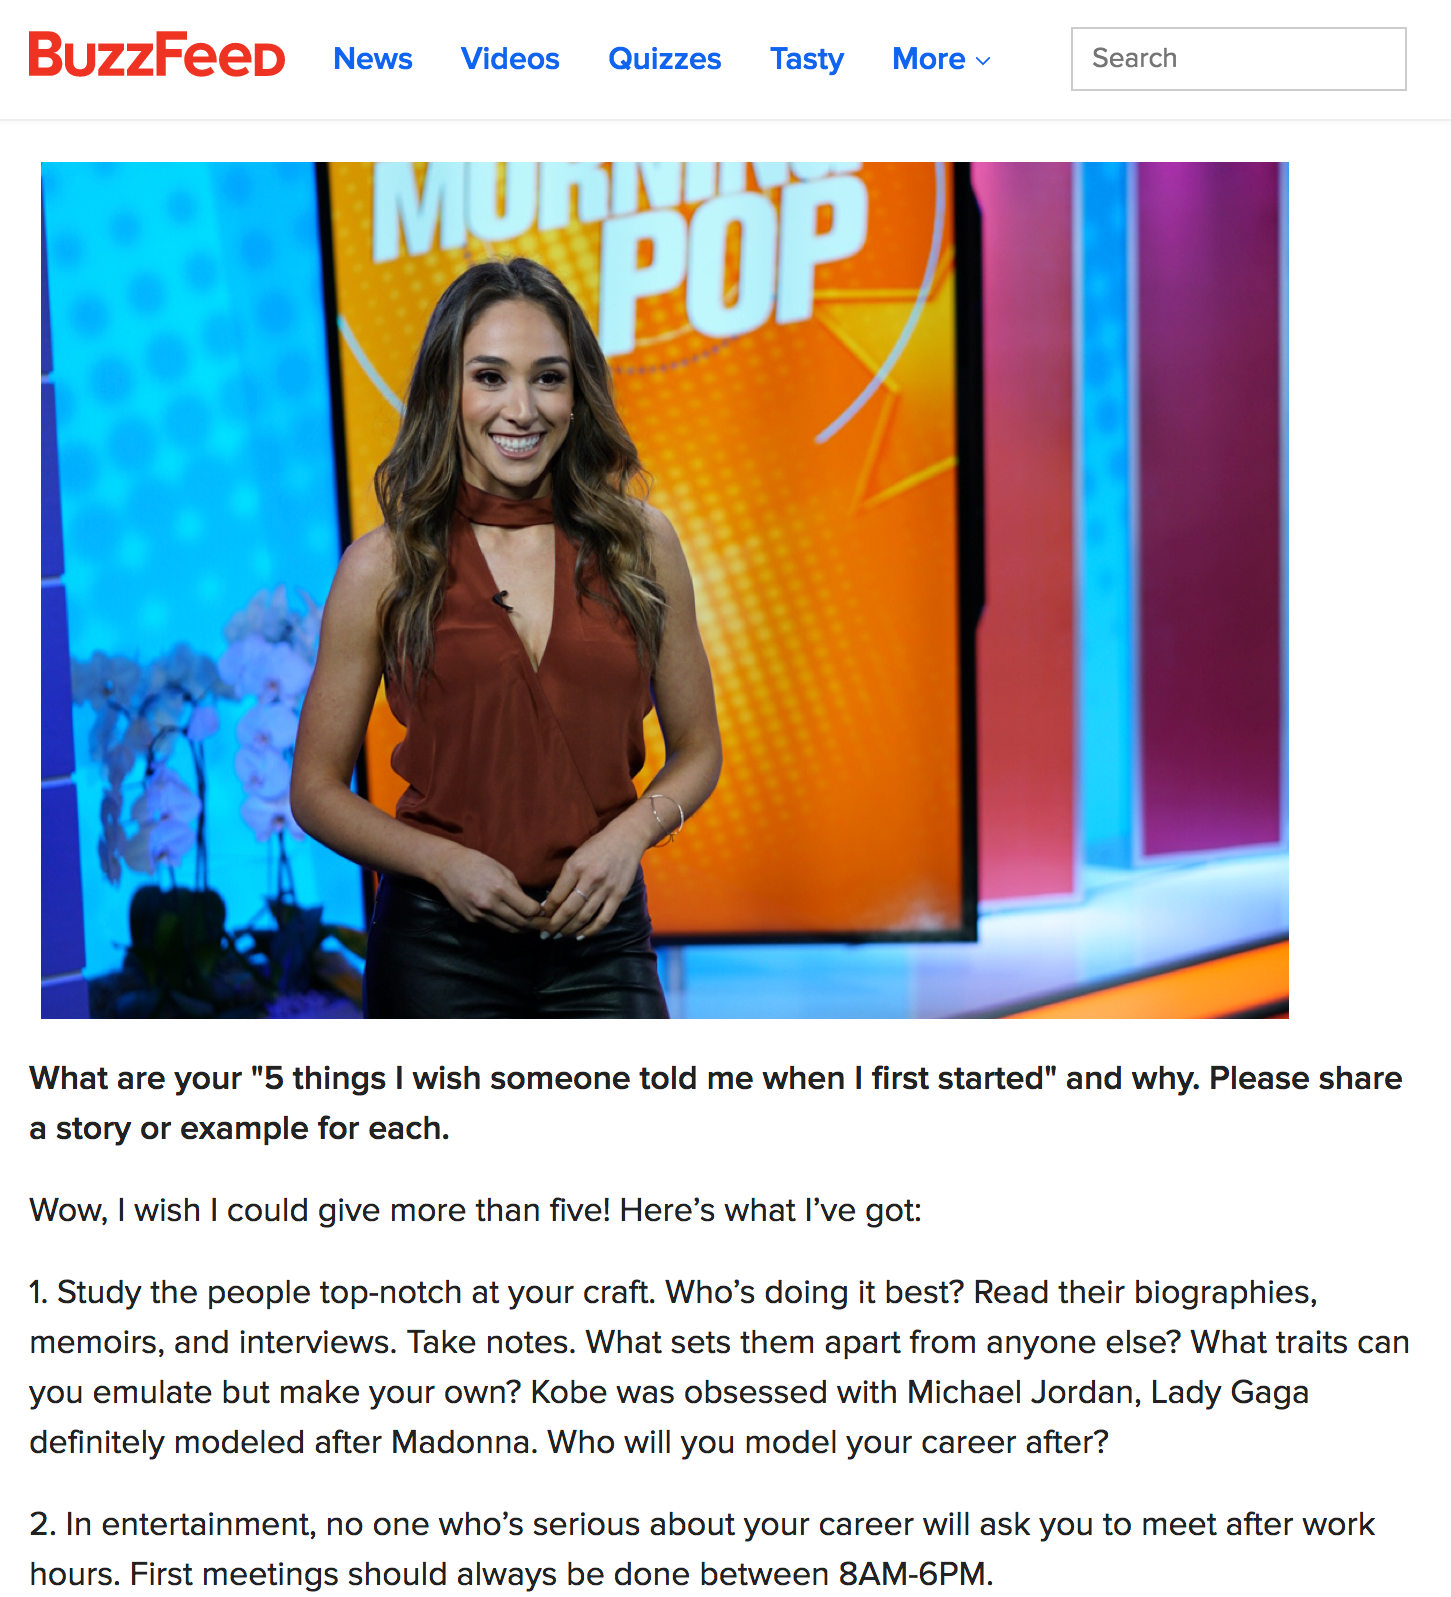 Buzzfeed - Interview With TV Anchor Danielle robay